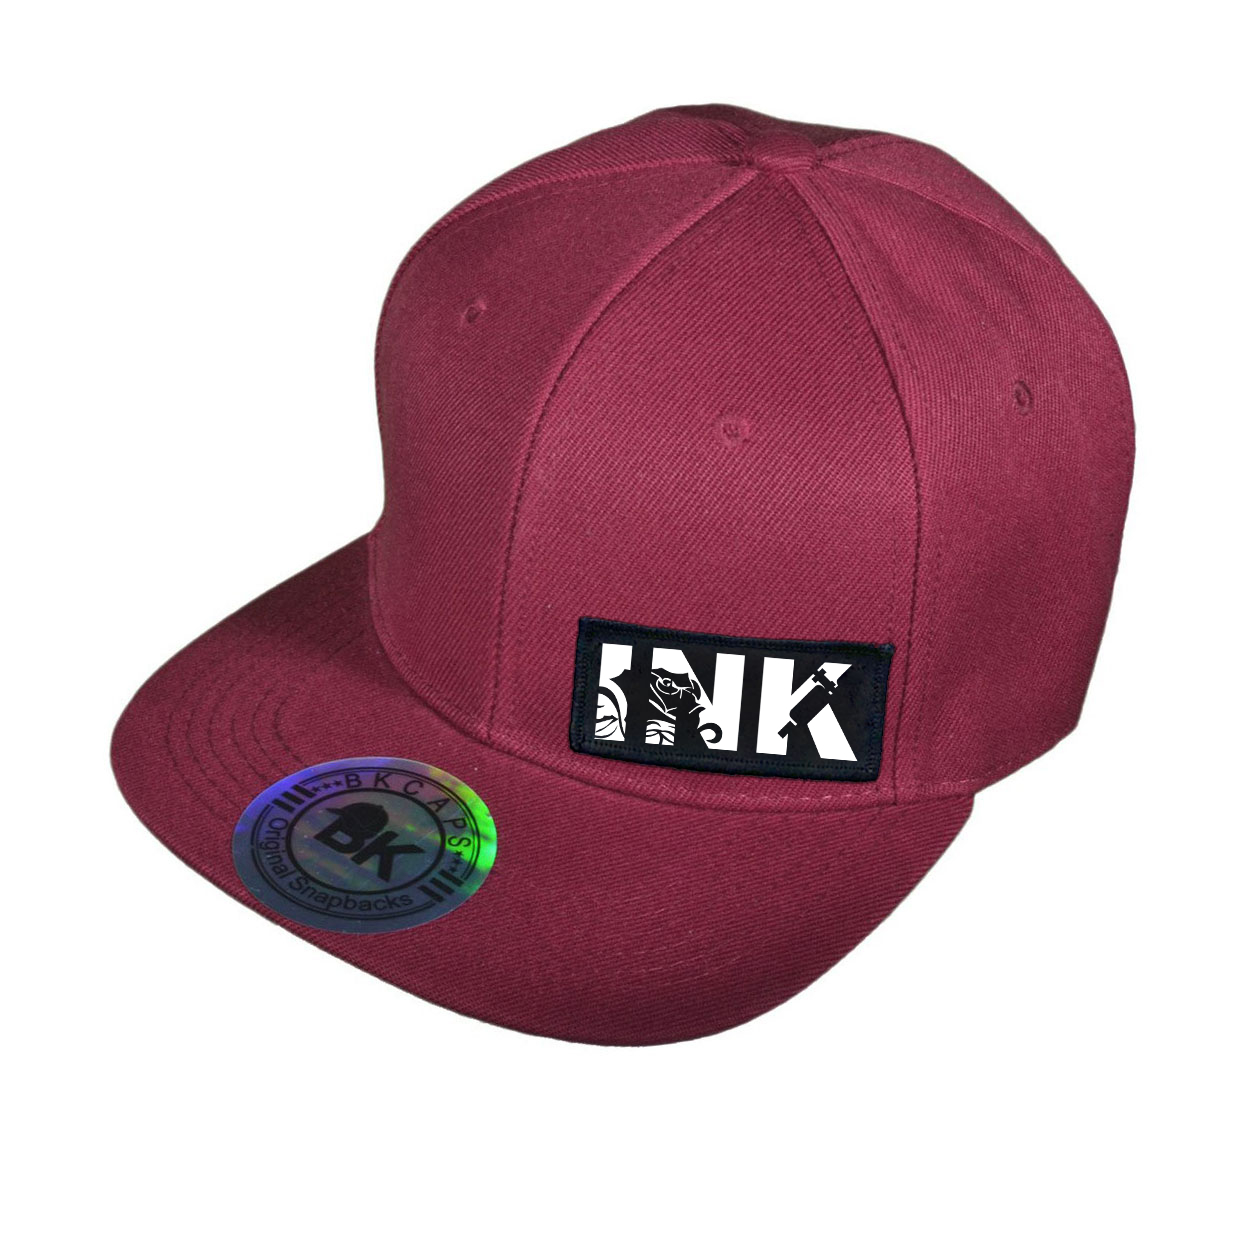 Ink Tattoo Logo Night Out Woven Patch Snapback Flat Brim Hat Burgundy (White Logo)